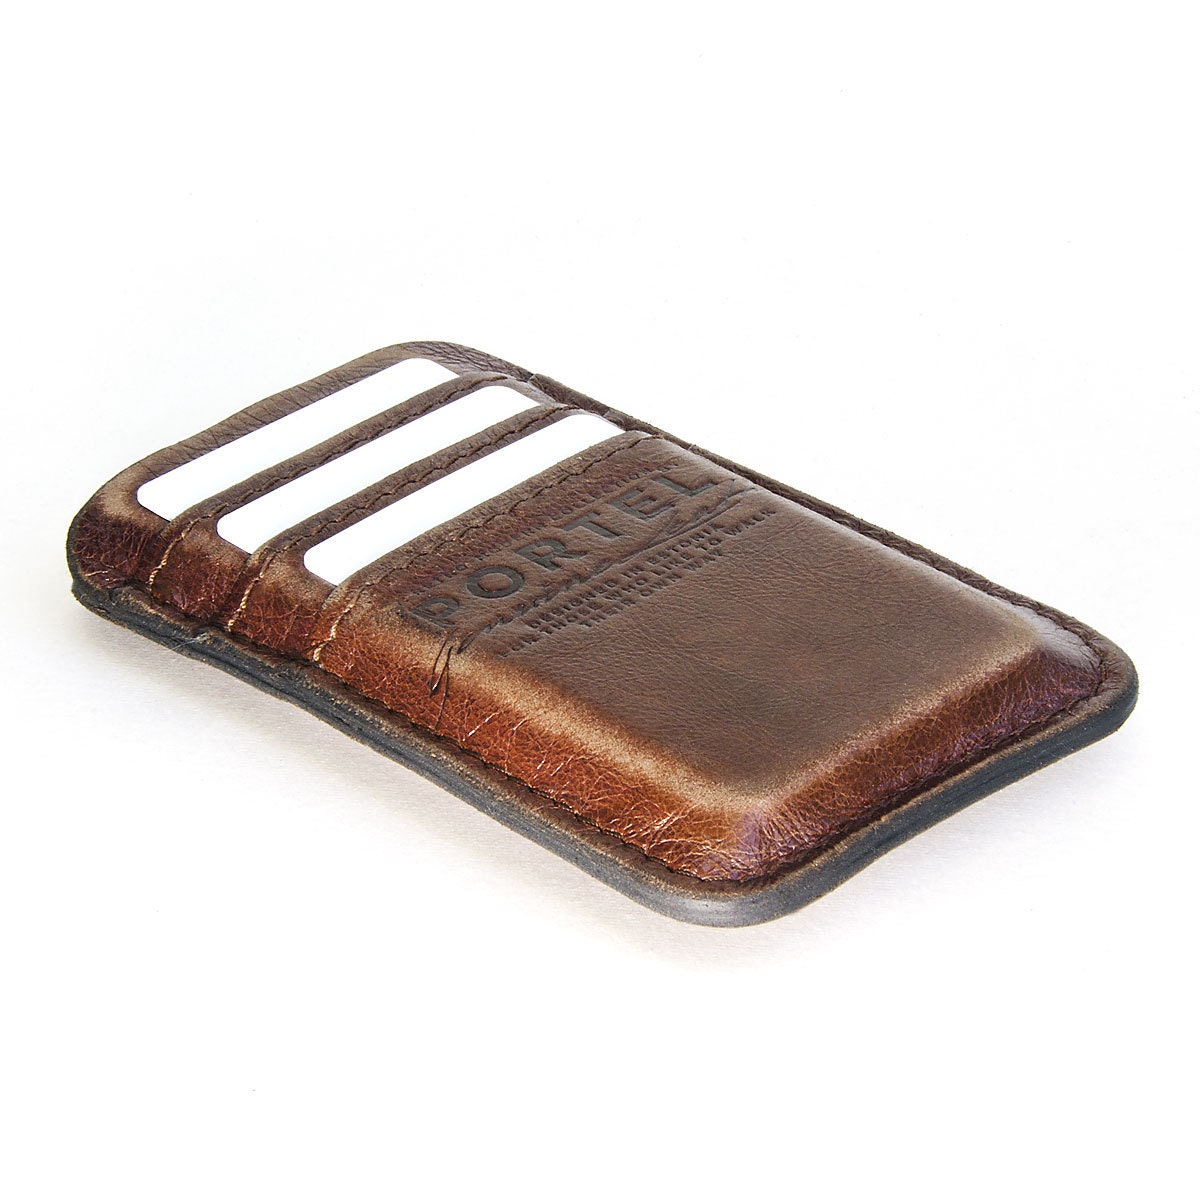 Show off your toy with our top 5 iphone 5 cases business insider - Iphone 5s leather case ...